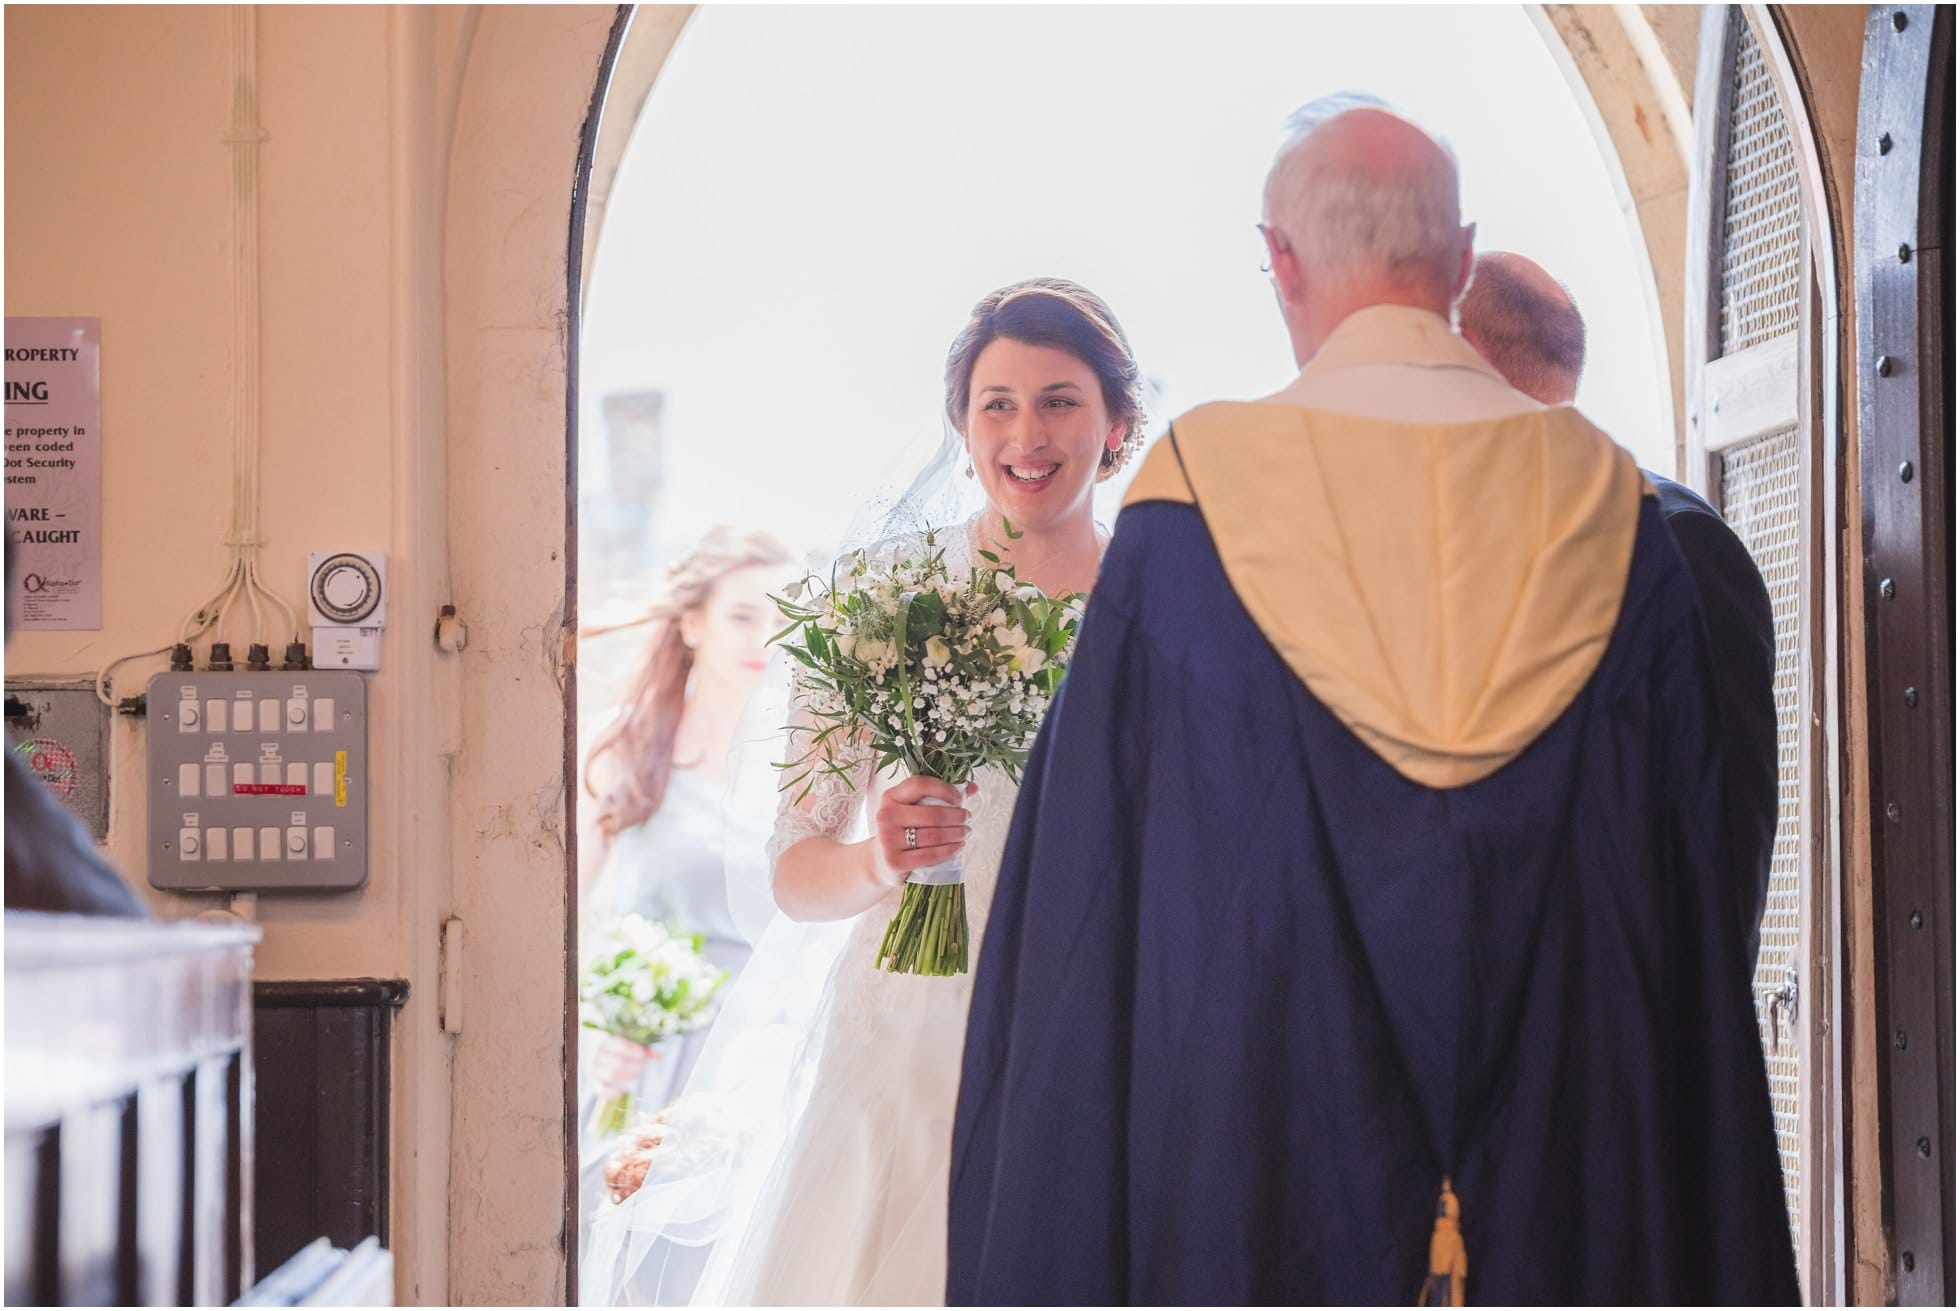 A happy bride about to walk down the aisle